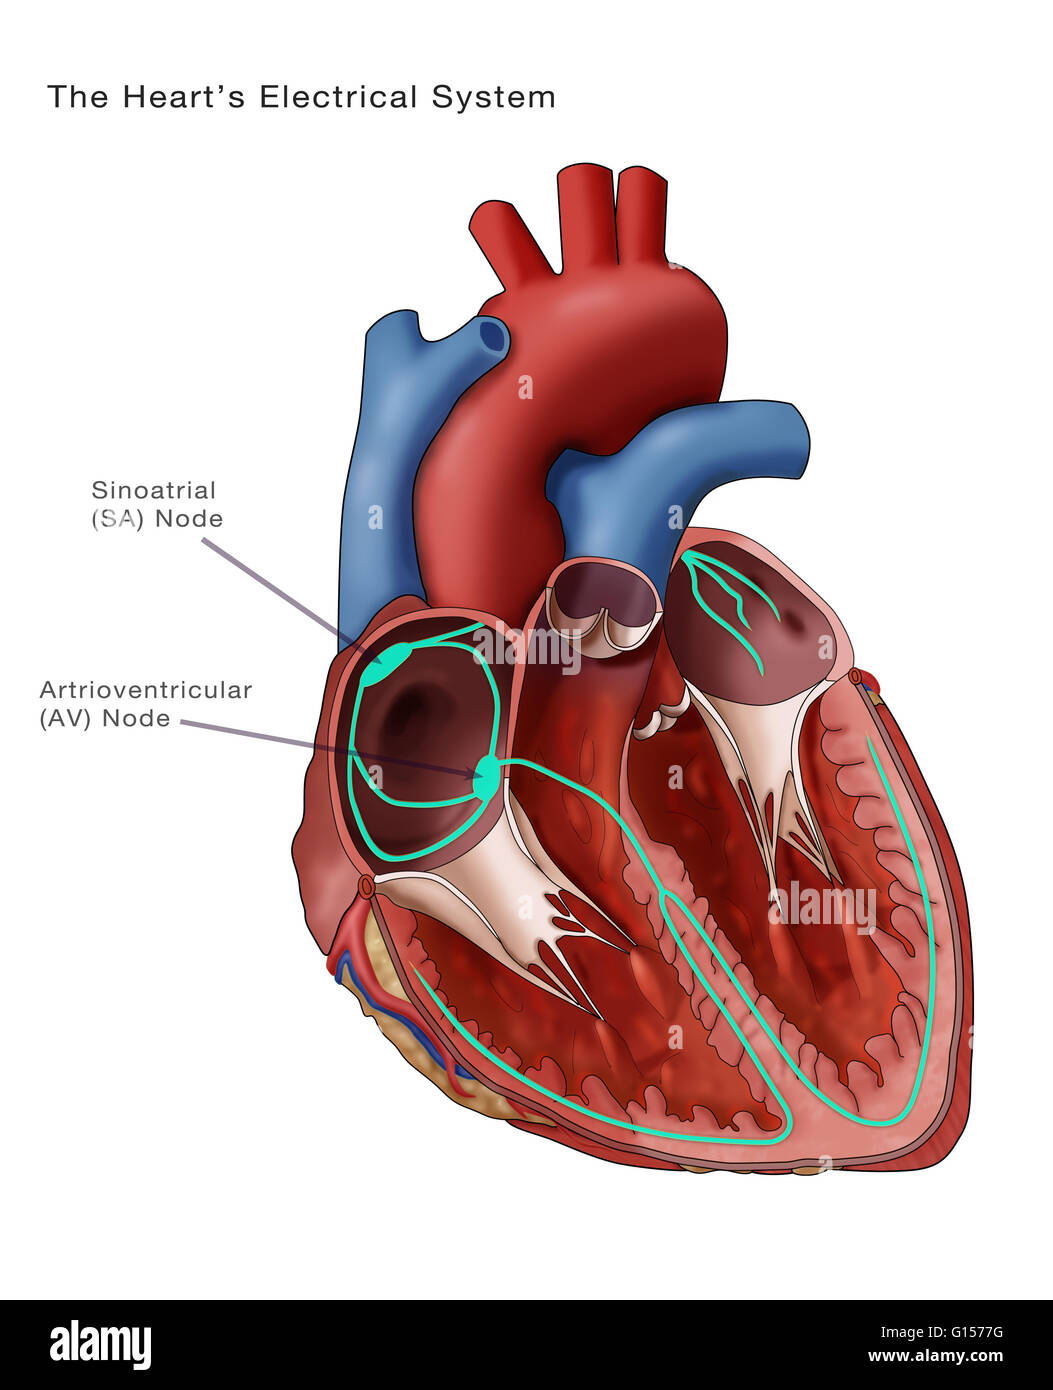 Illustration depicting the hearts electrical system annotated are illustration depicting the hearts electrical system annotated are the sinoatrial node and the atrioventricular node the sinoatrial sa node thick green ccuart Images